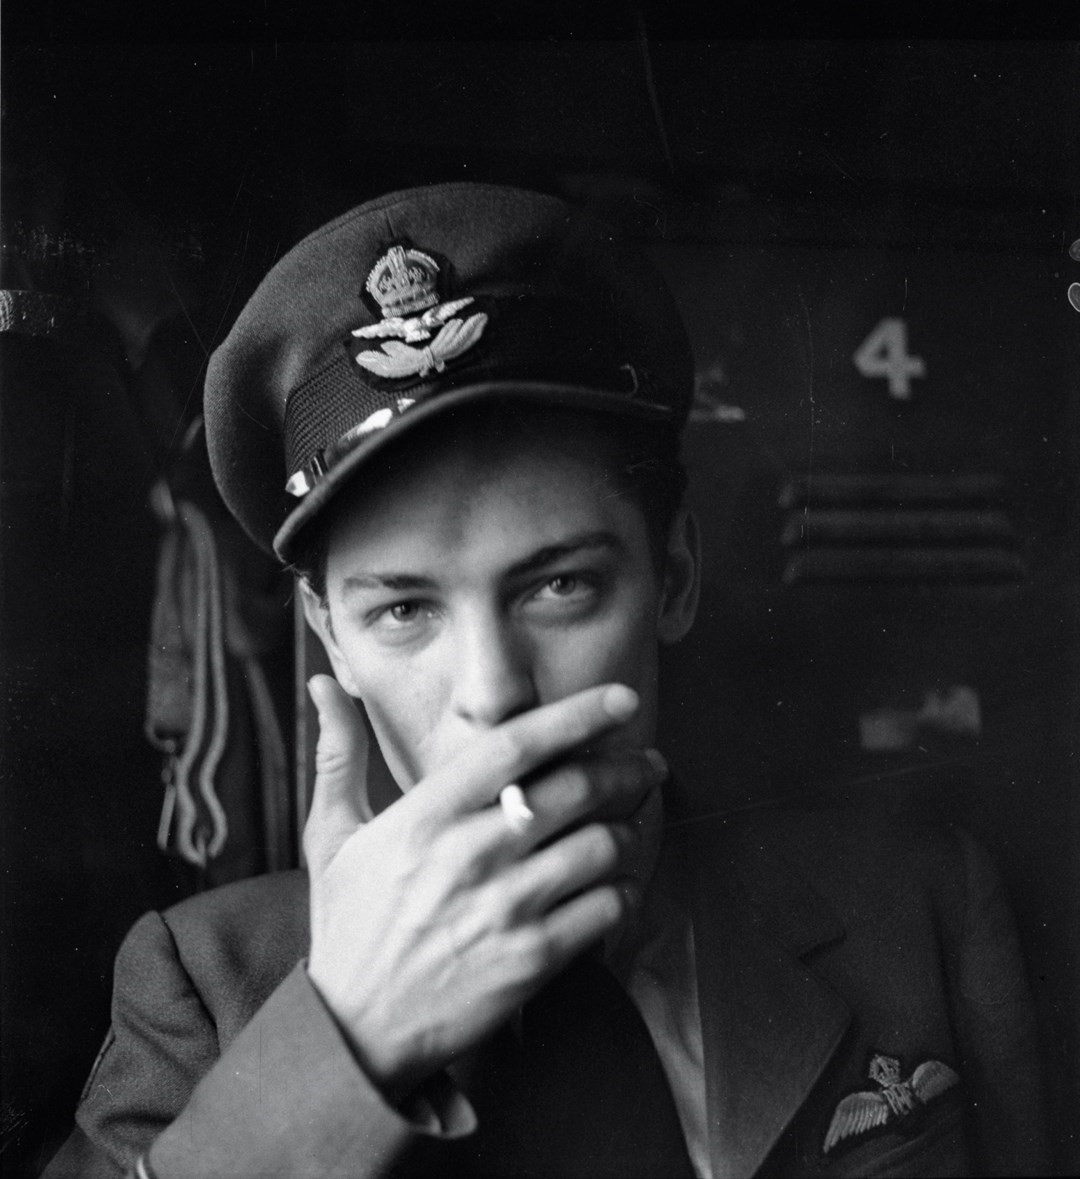 Eagle Squadron Pilot, 1942, by Cecil Beaton